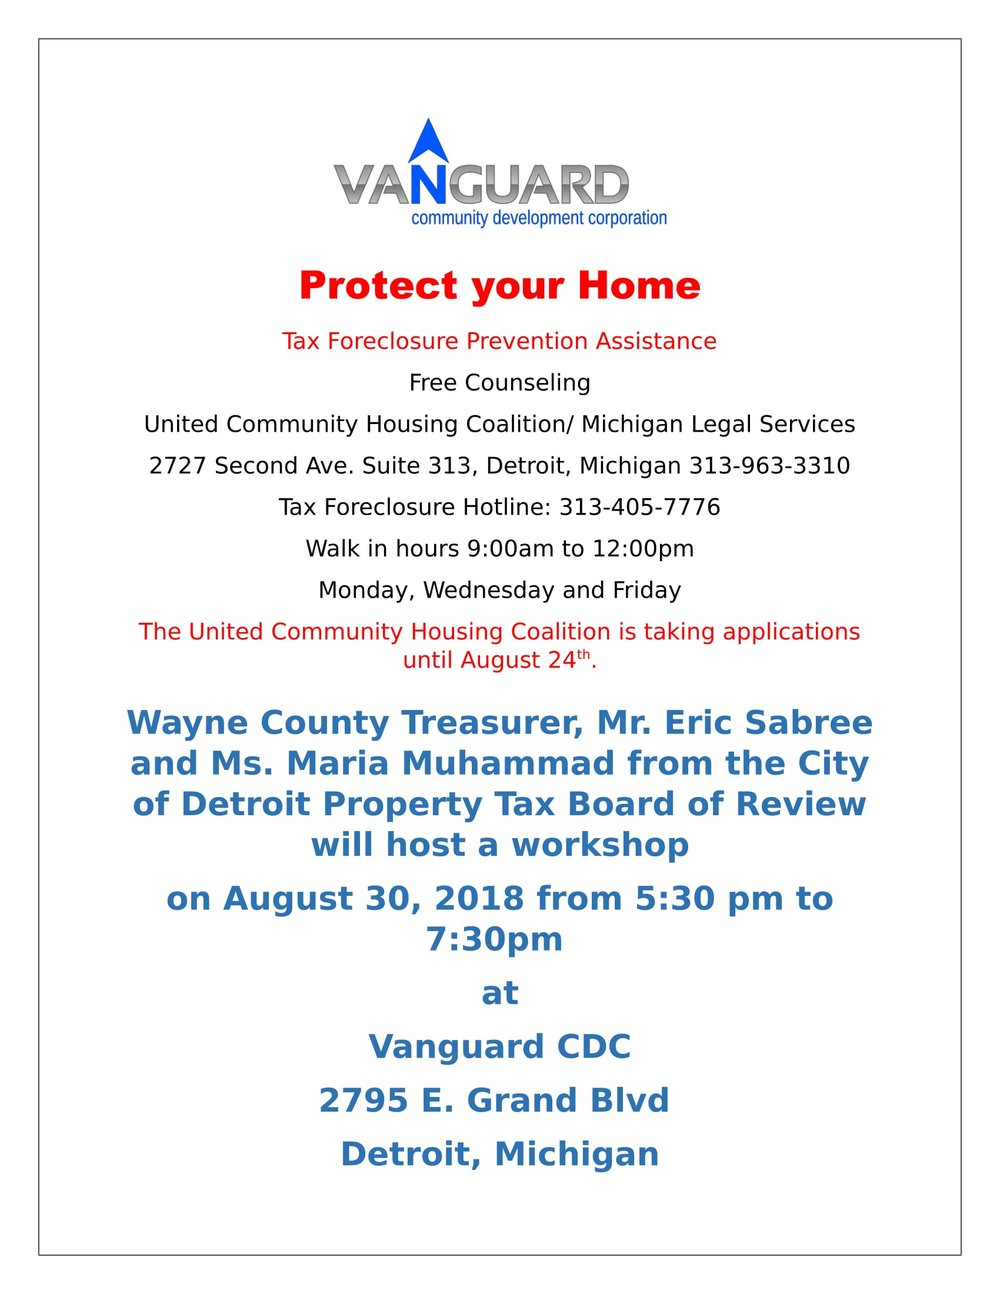 Updated Tax Foreclosure Presvention Flyer - 8-14-18-1.jpg